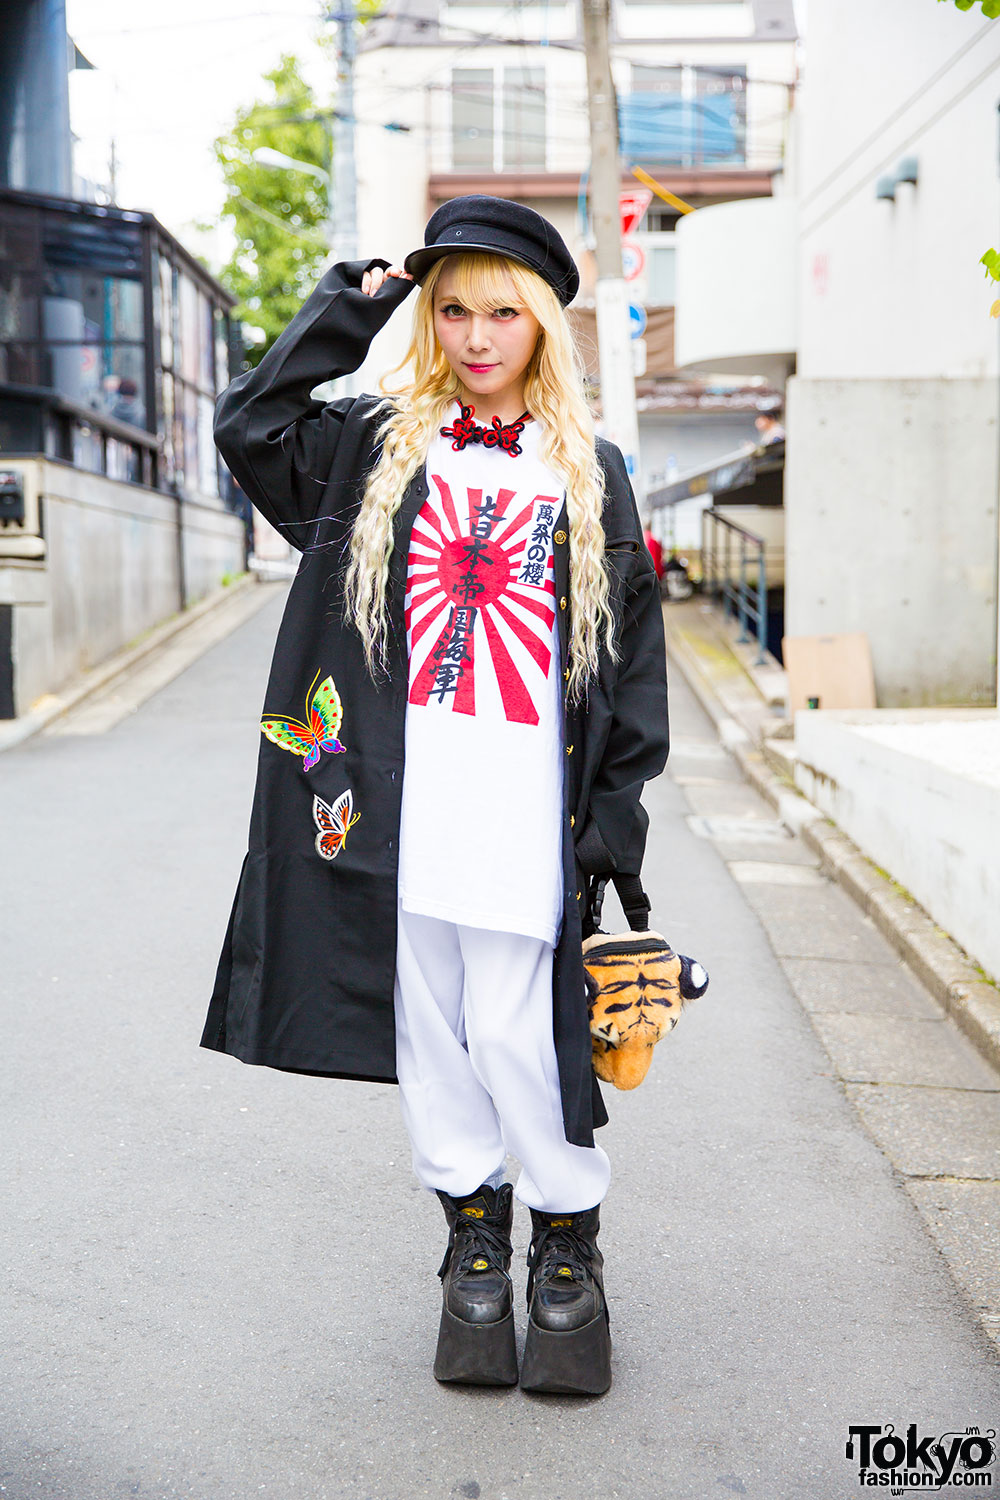 Remarkable topic blonde geisha girl message, matchless)))